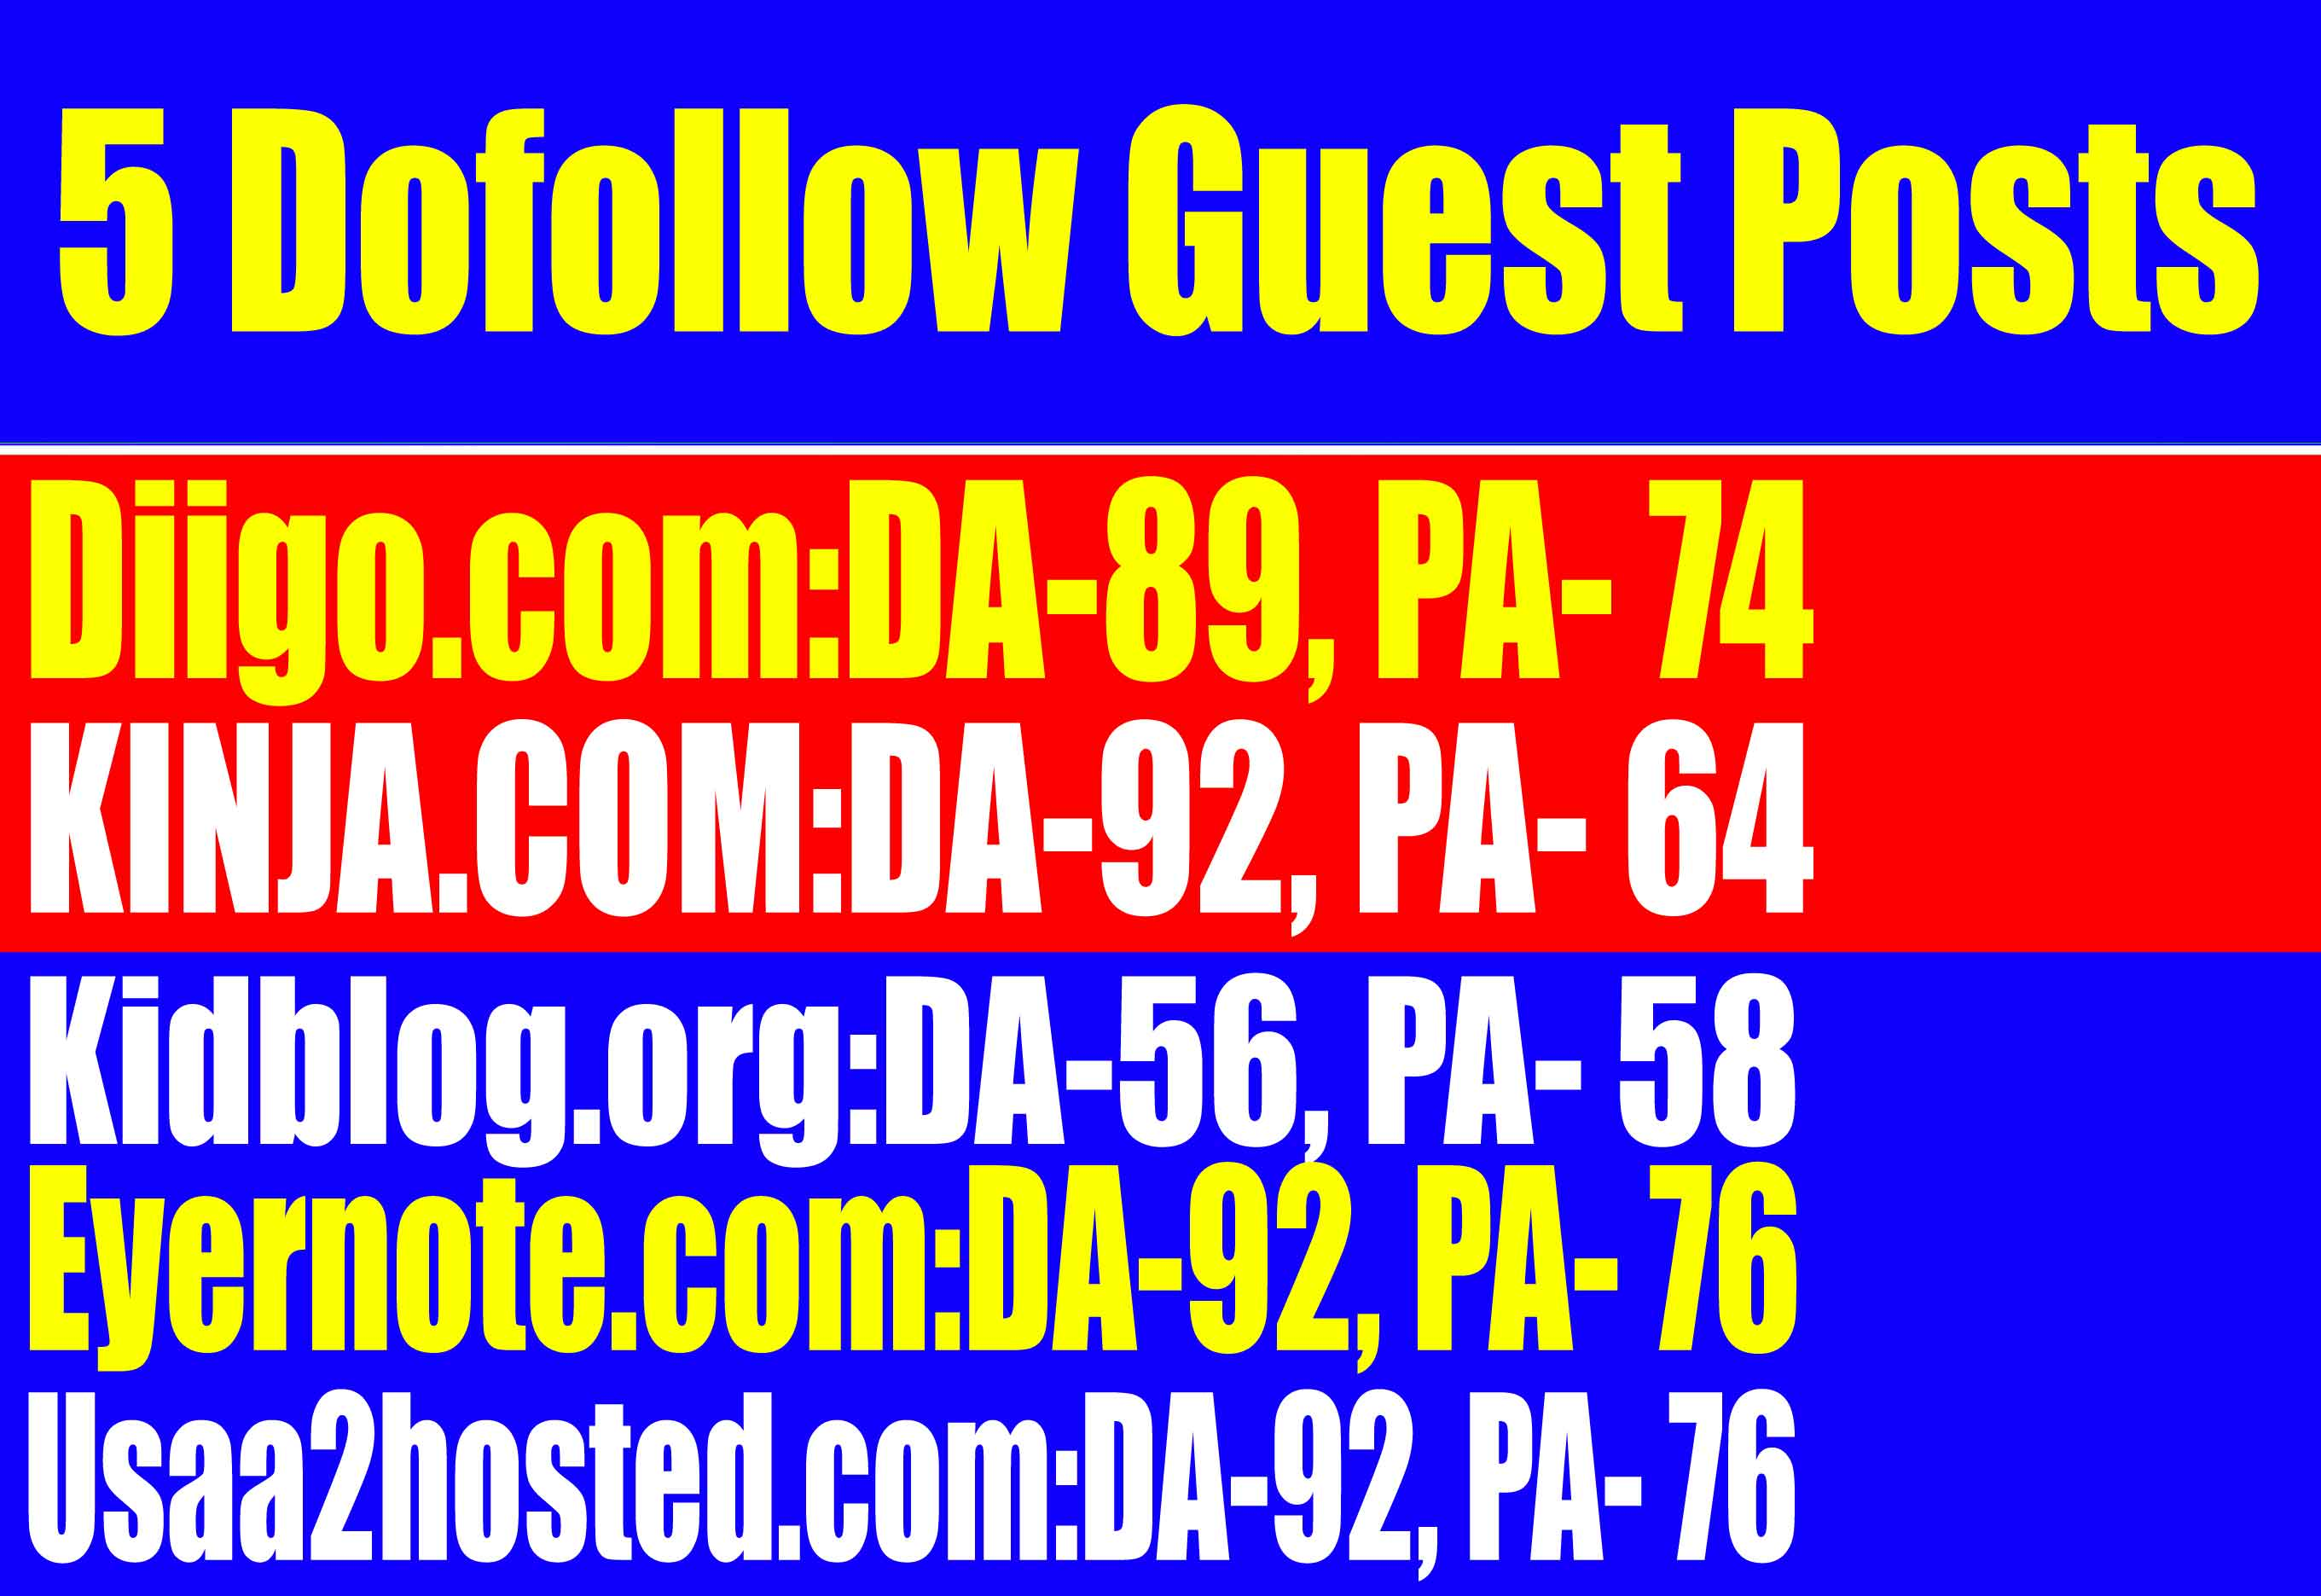 Dof0llow 5 Guest Posts on Diigo,  Kinja,  Kidiog. org,  Evernote,  Usaa2hosted - High DA Sites